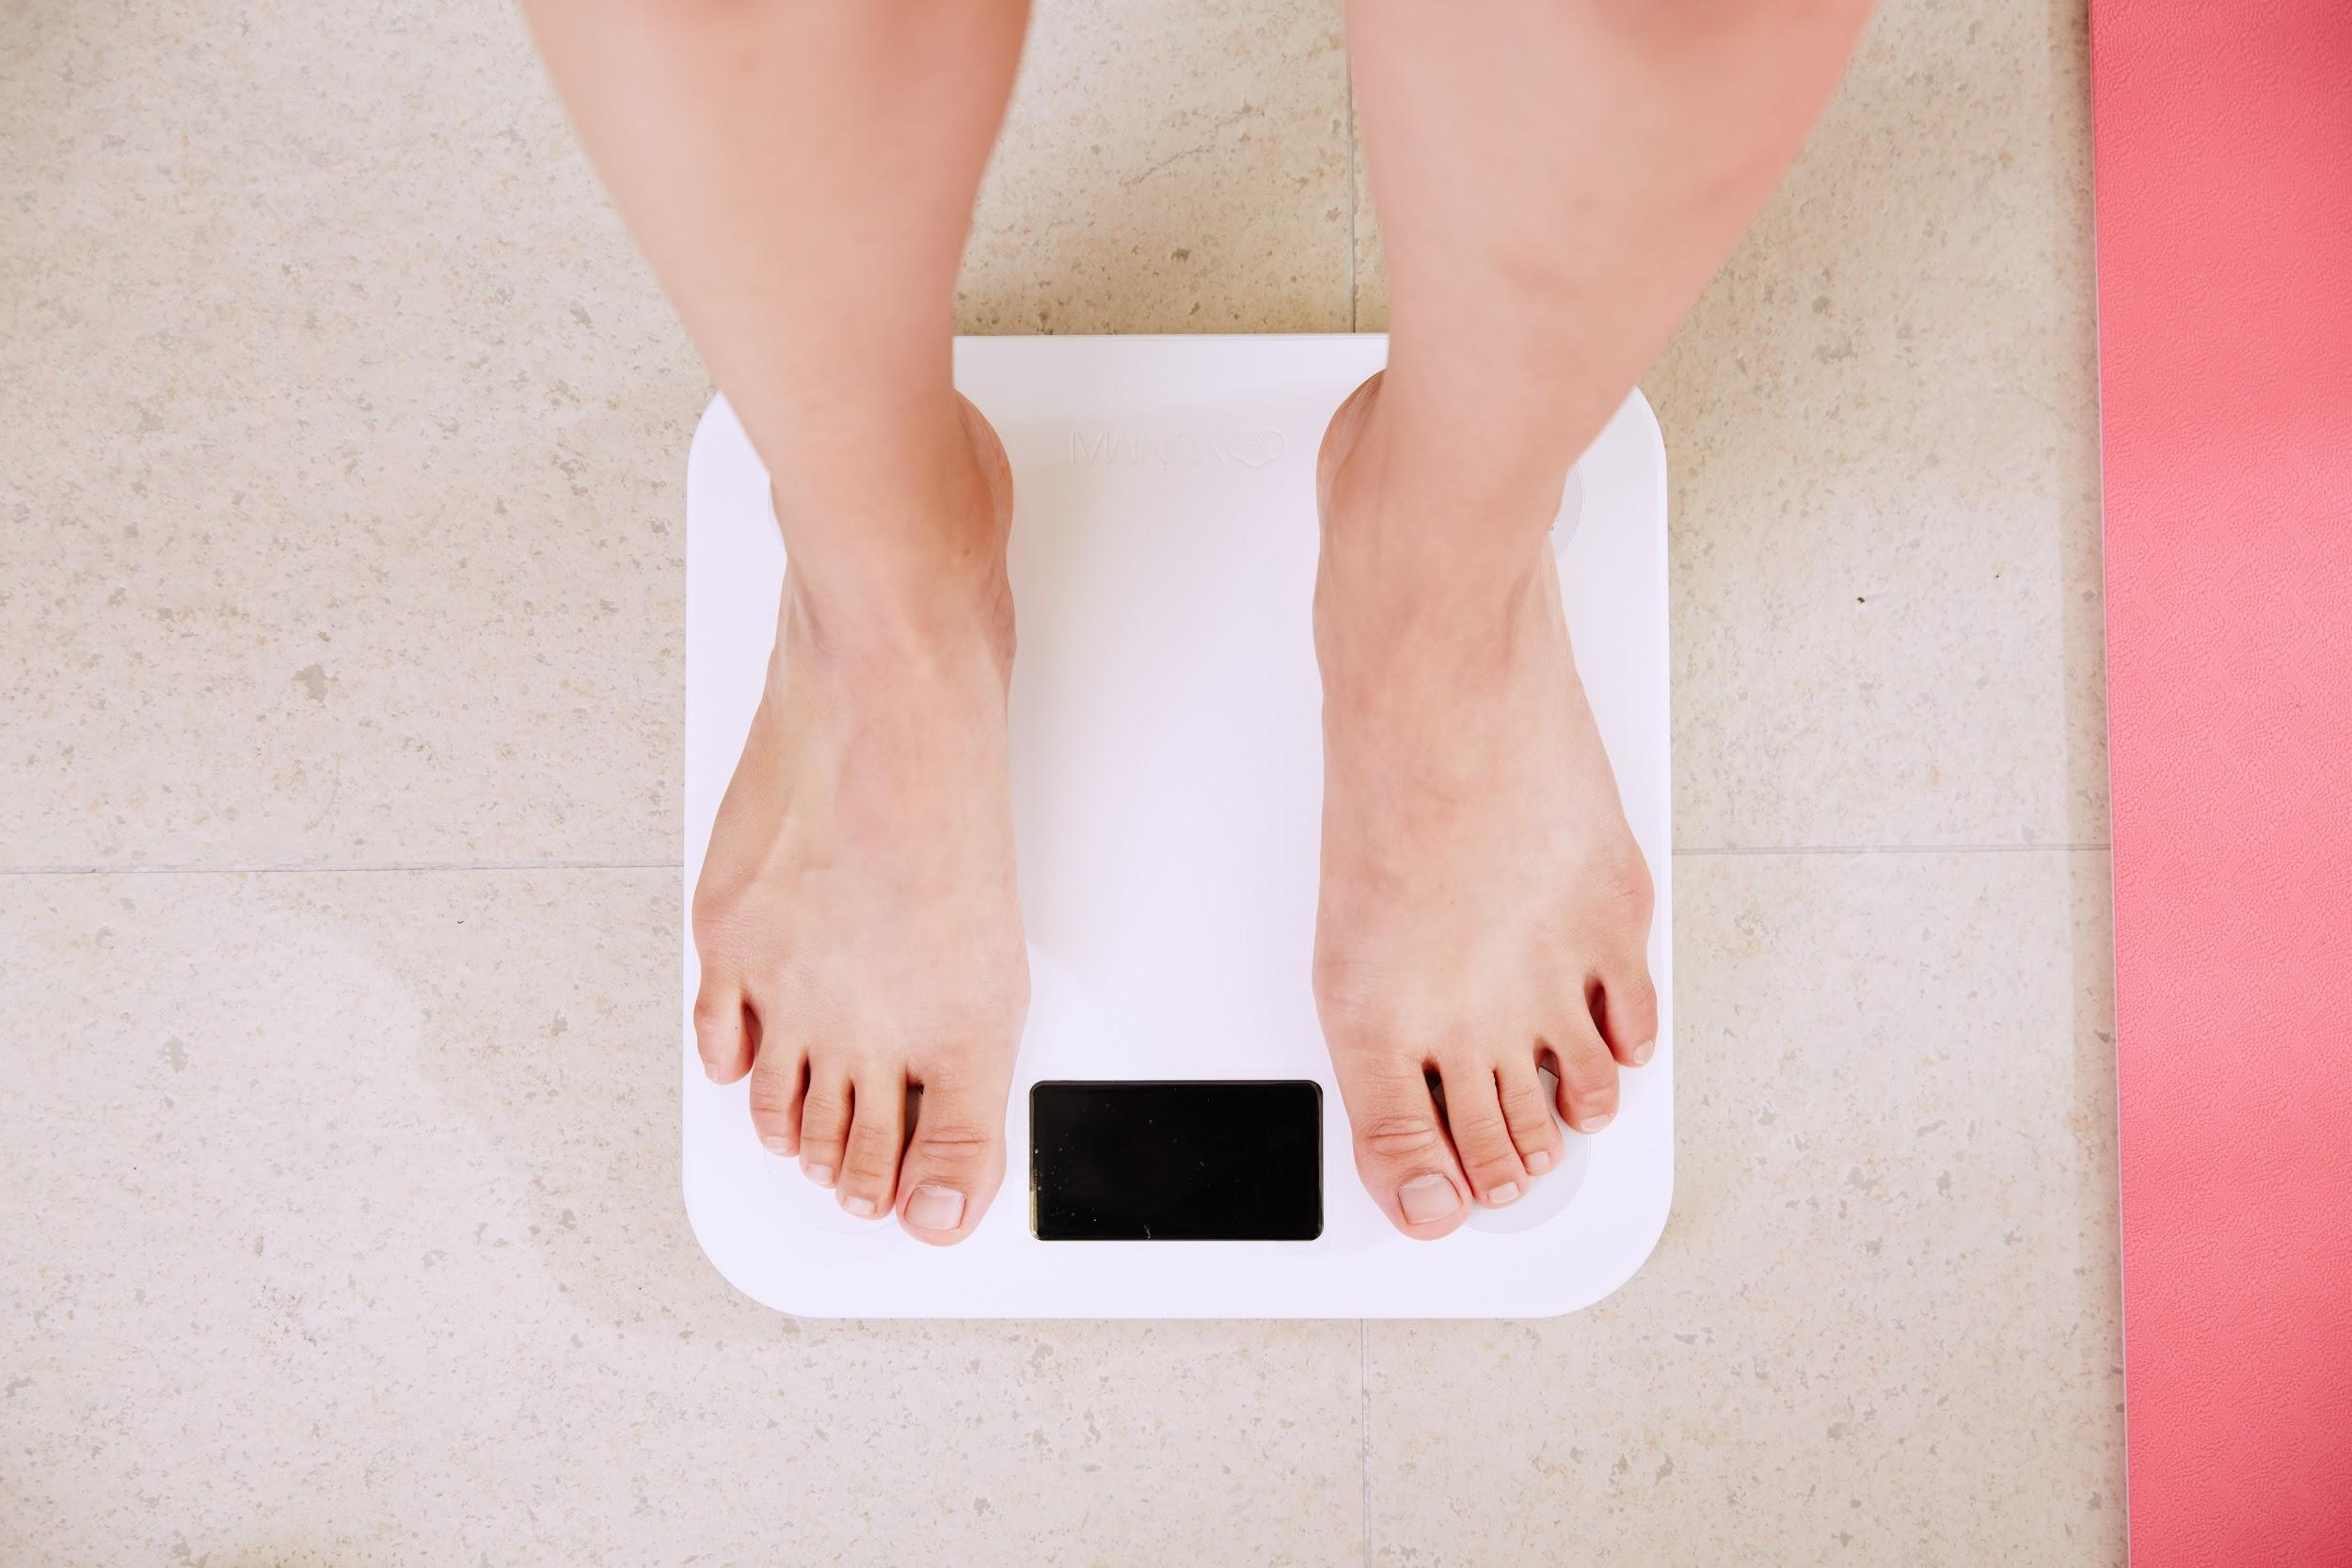 person standing on digital scale